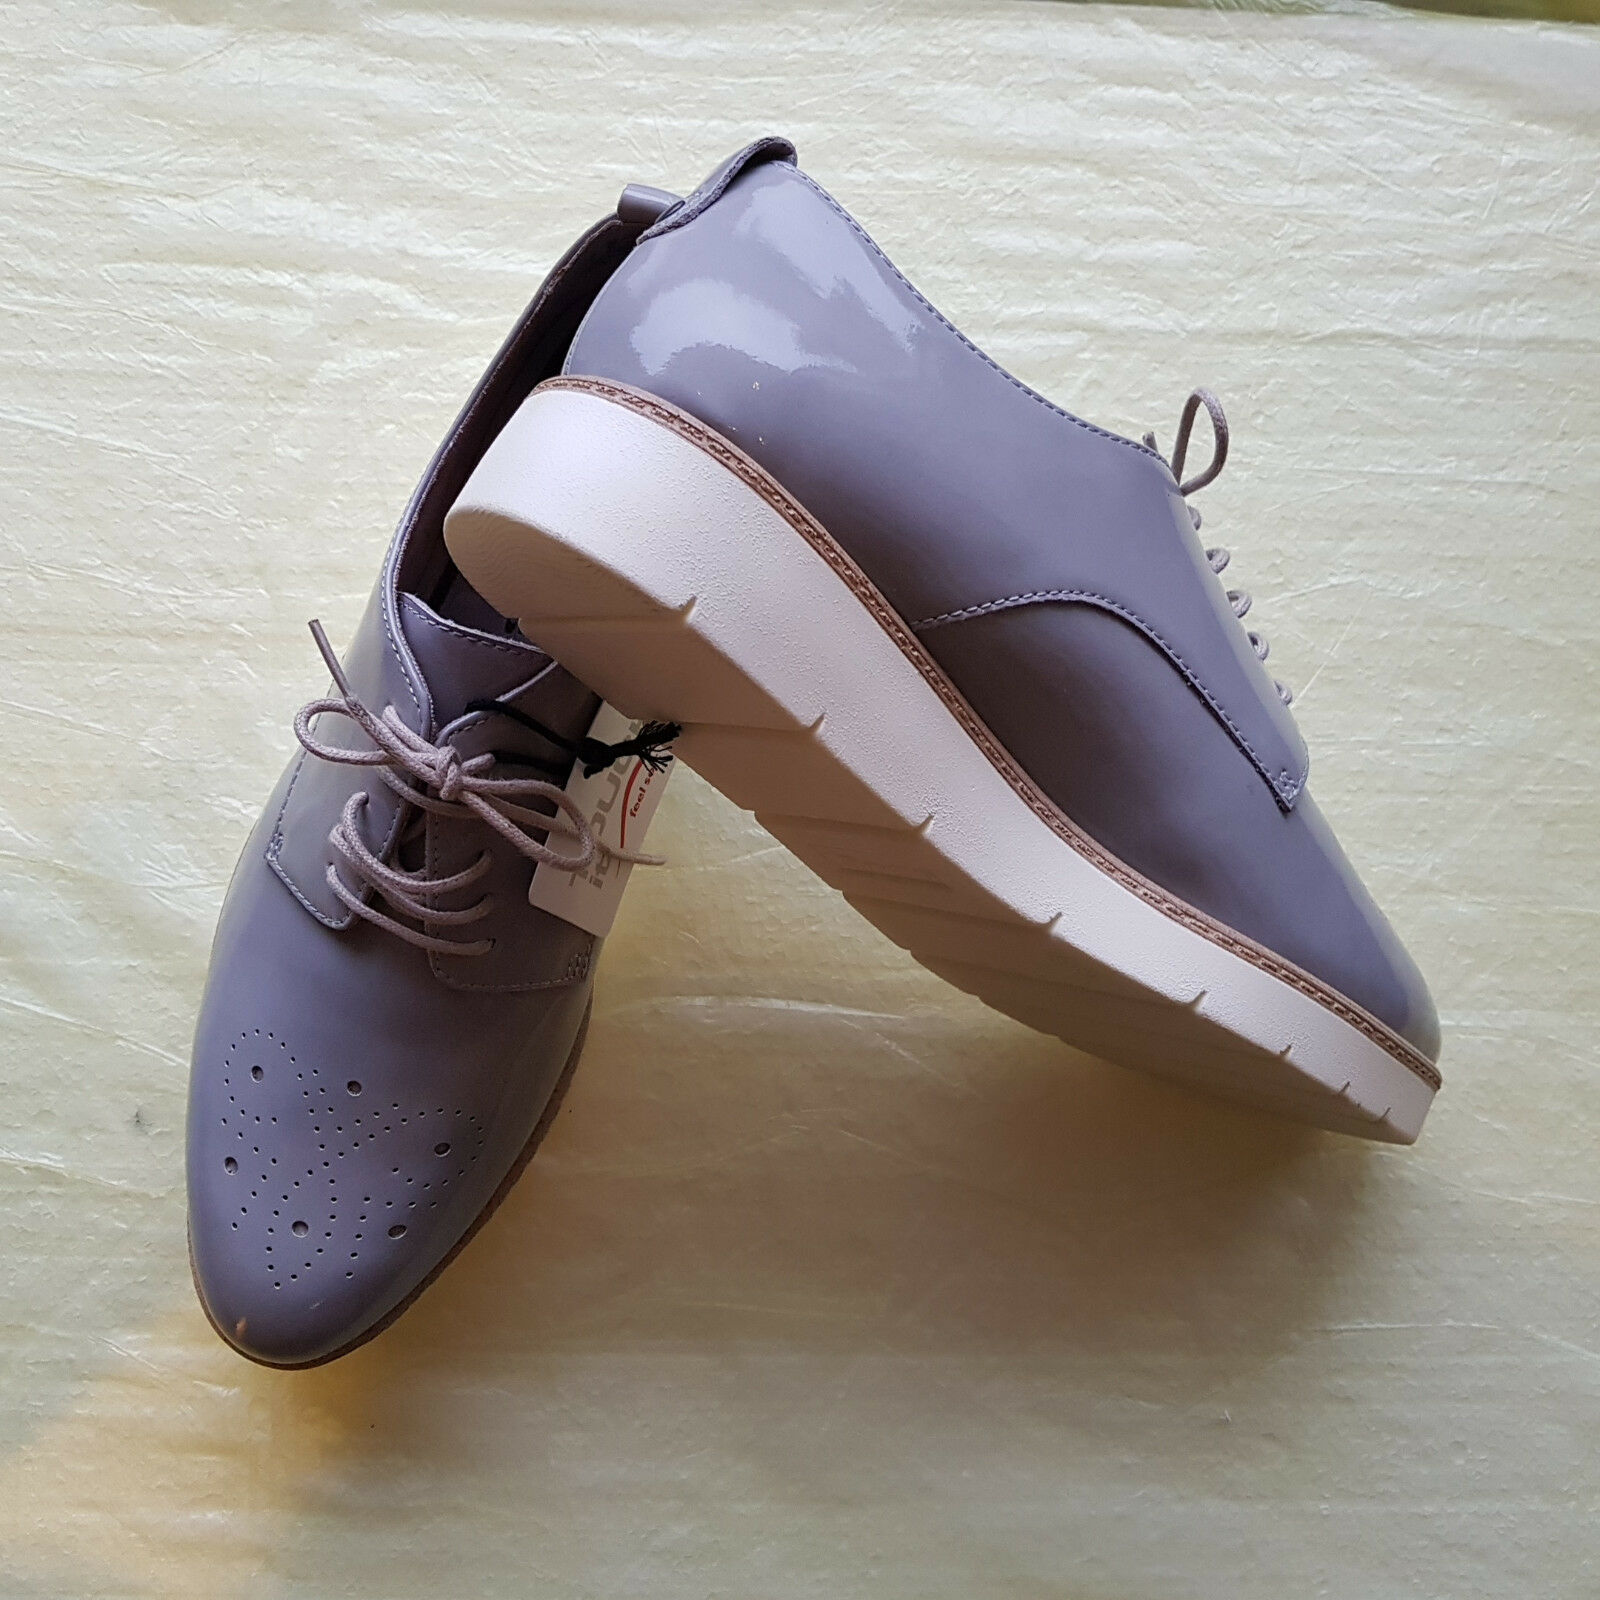 Tamaris feel Damenschuh, hellgrau,Lackleder,( Touch it, feel Tamaris soft ), Gr. 39 adf9cf